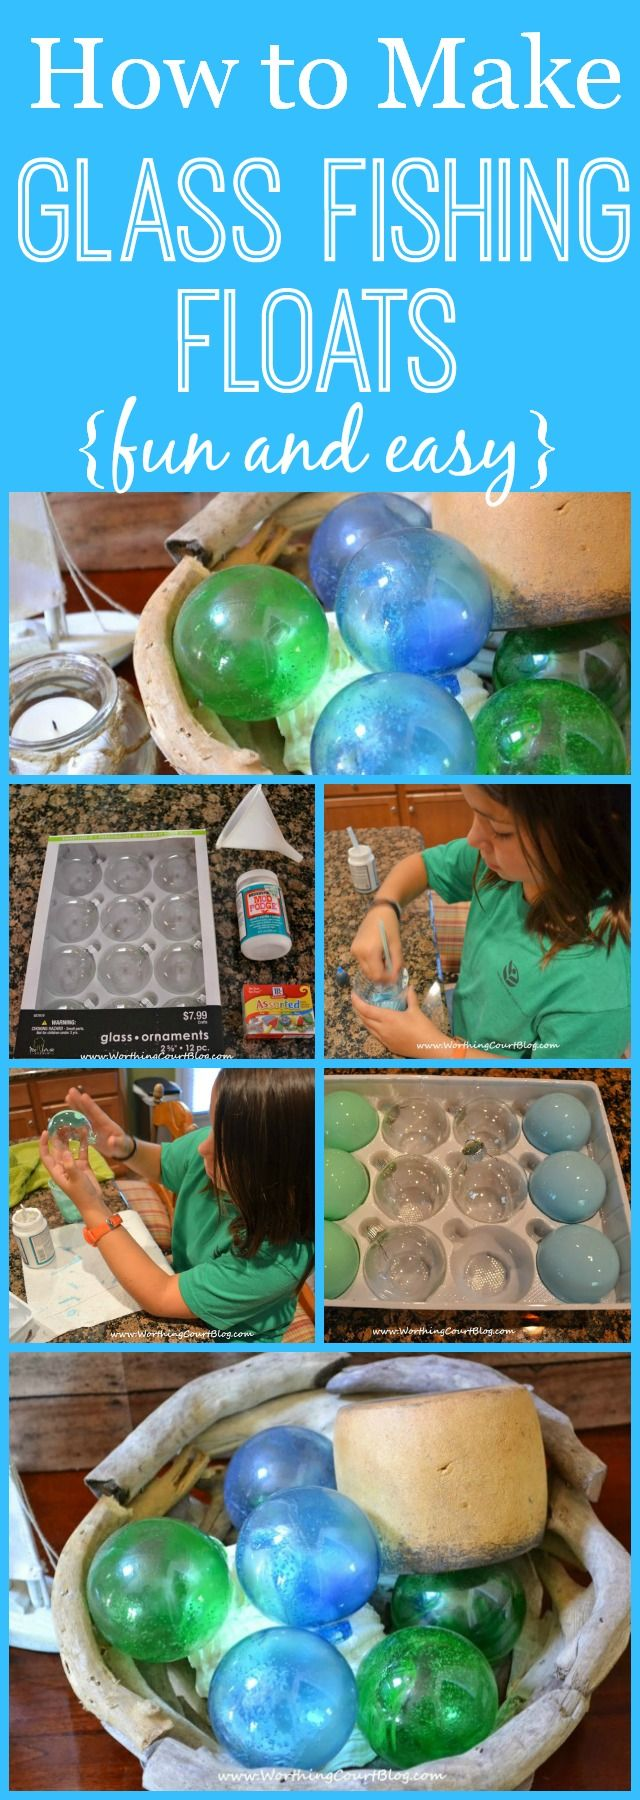 How to Make Glass Fishing Floats using Clear Christmas Ornaments - these would be great in a coastal beach - themed display - via Worthing Court Blog